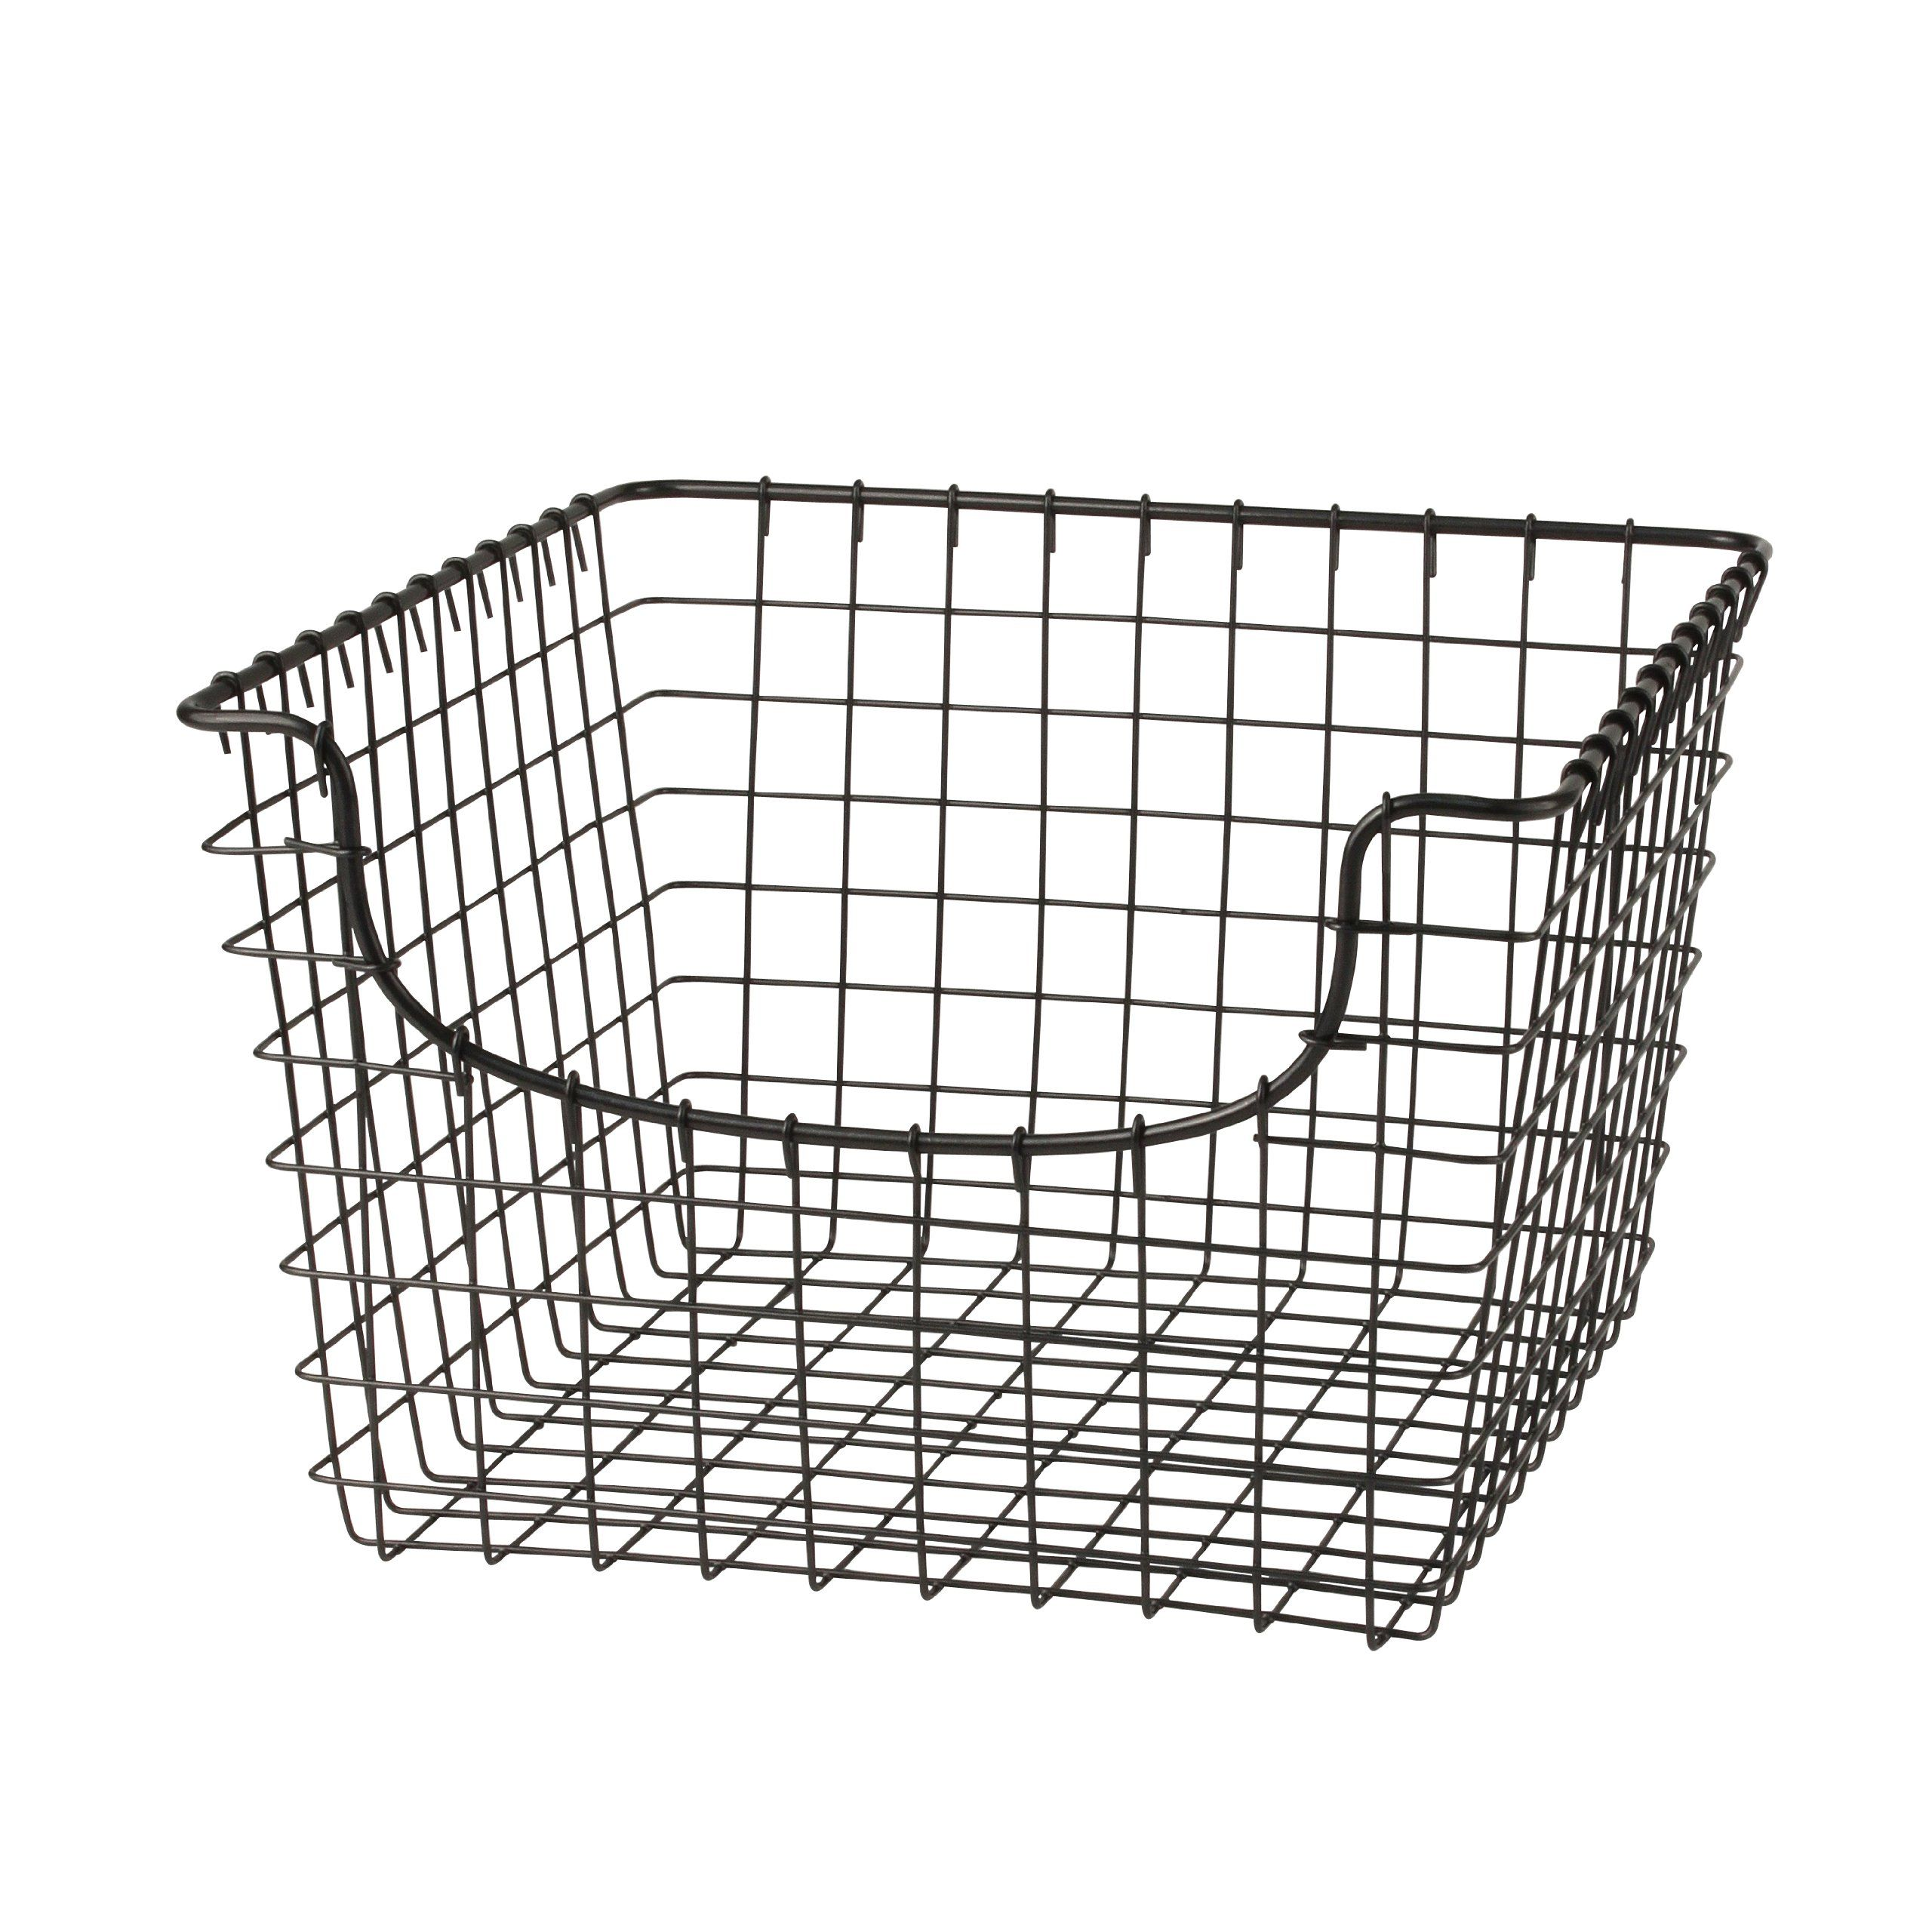 Spectrum 98976 Scoop Basket, Medium, Cool Gray   For The Powder Room    Storage For Toilet Paper And Extra Hand Towels